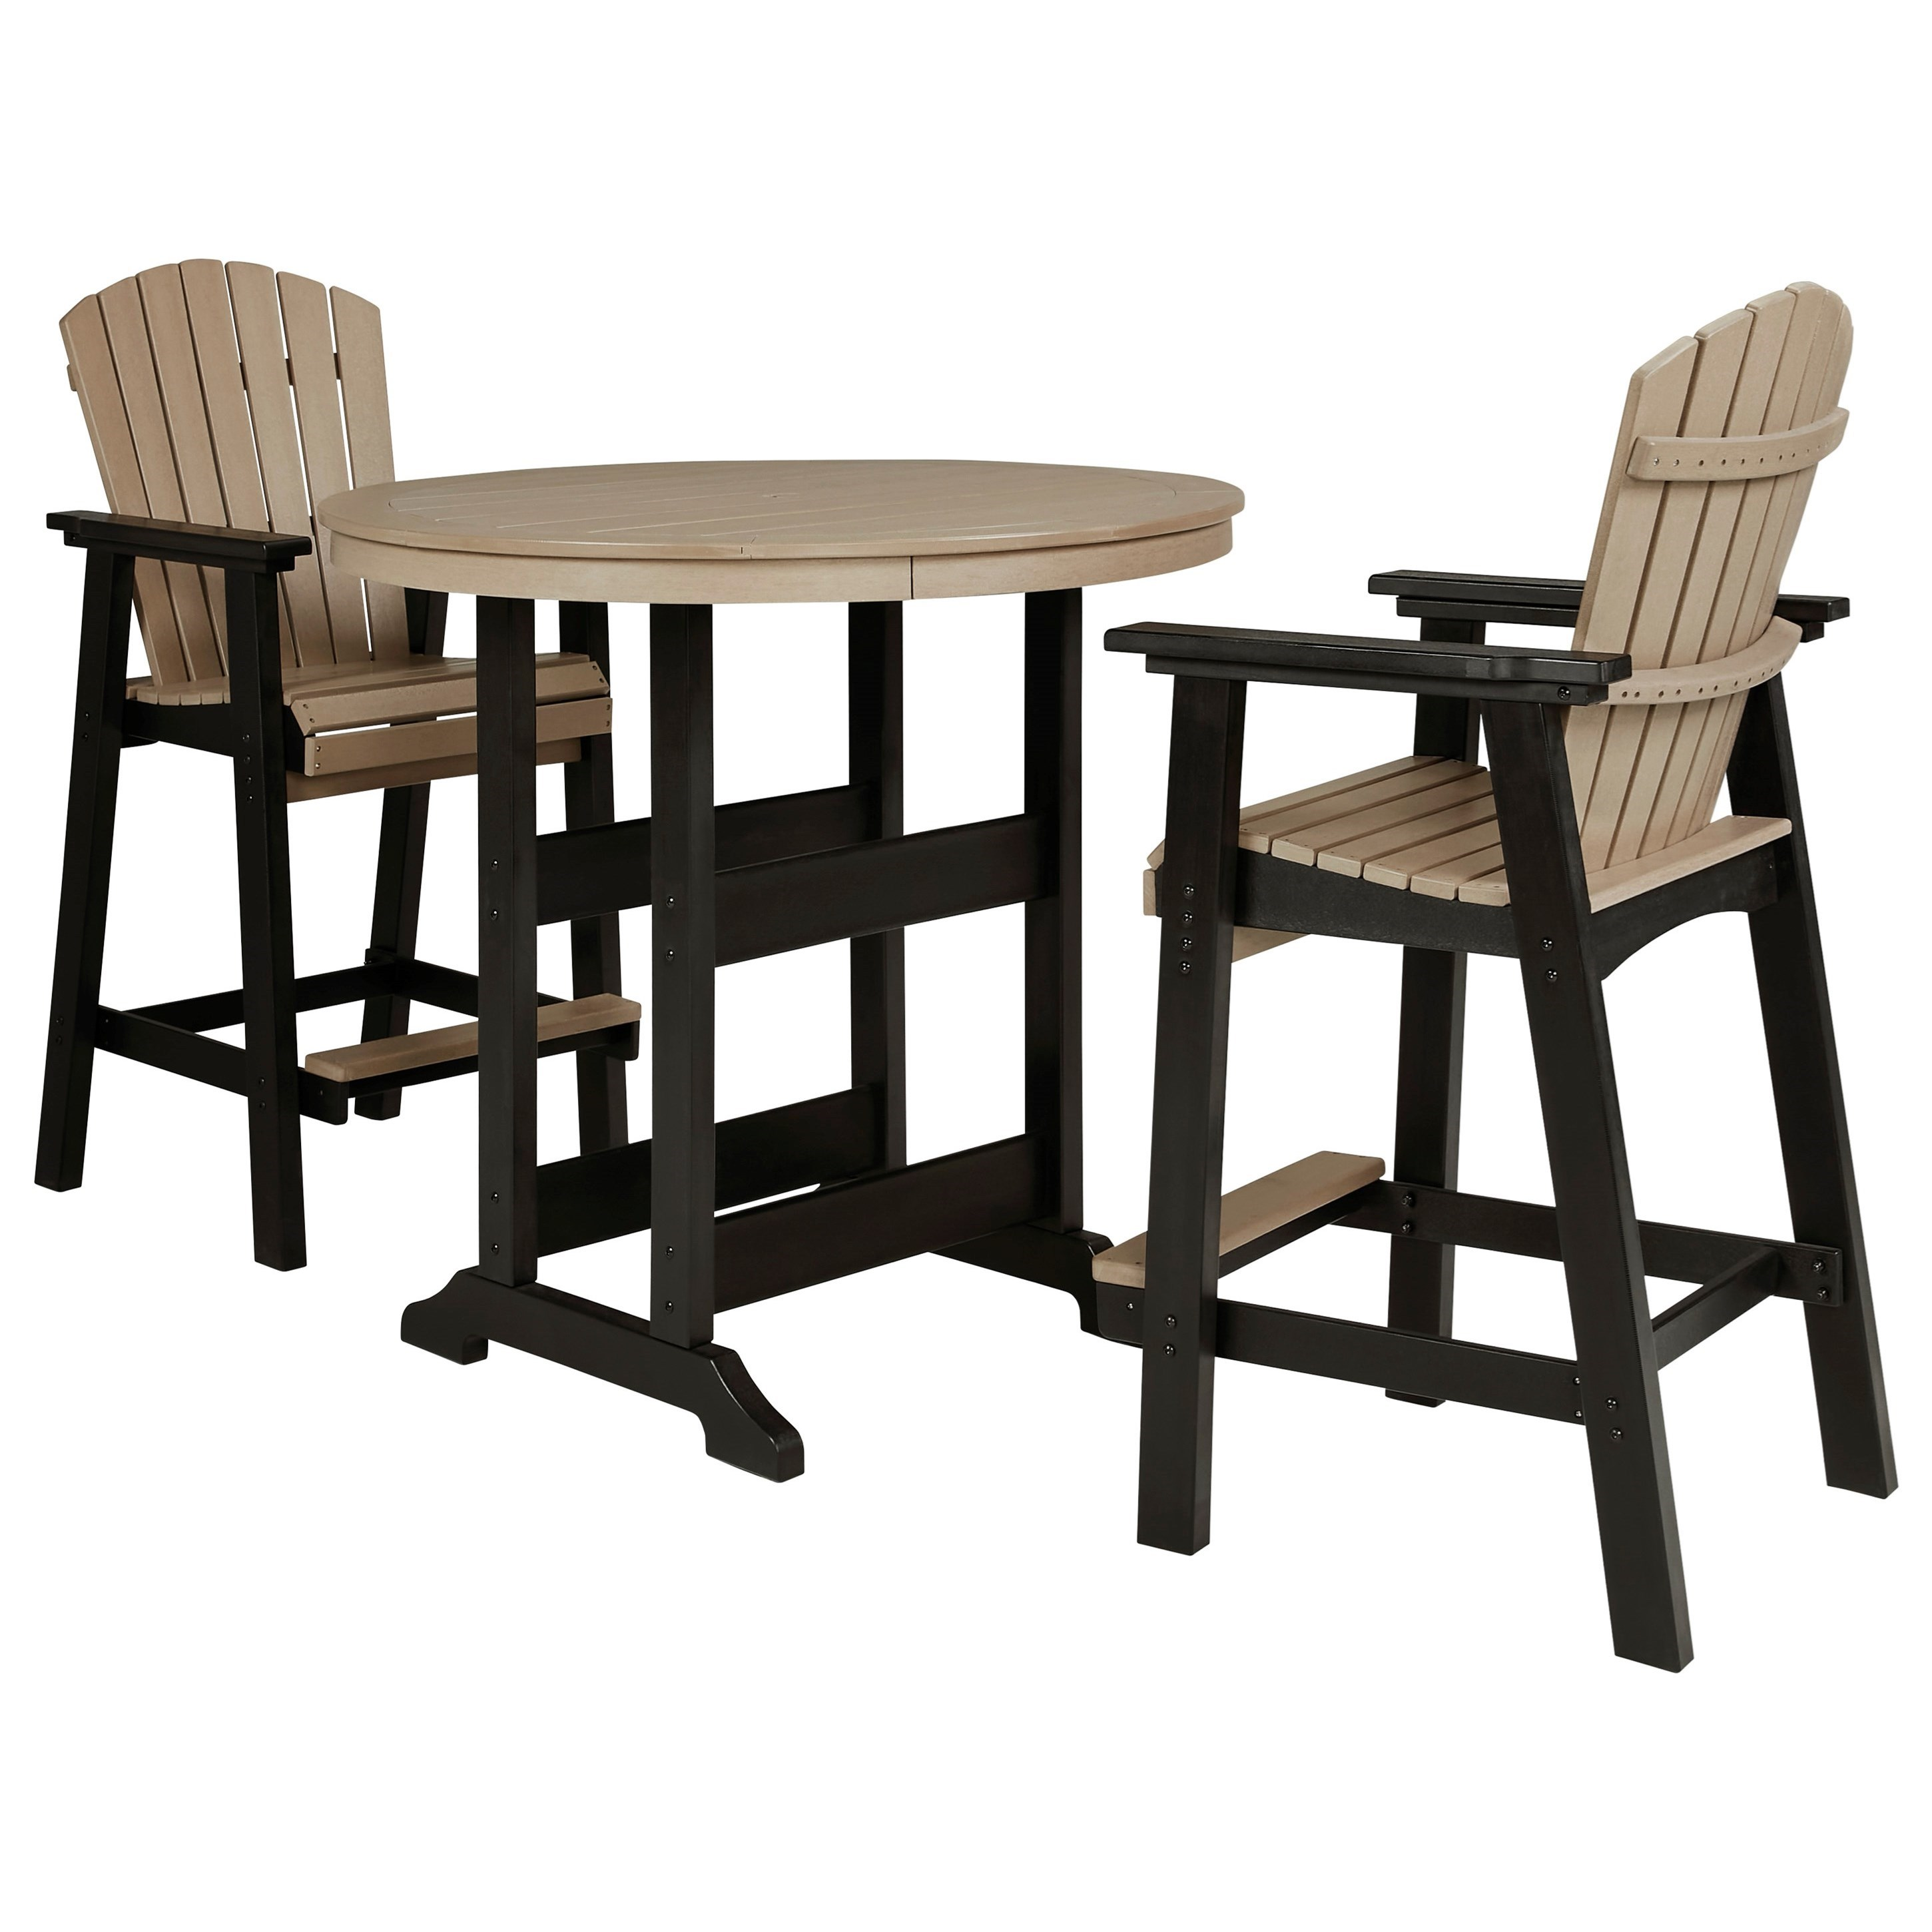 Fairen Trail 3-Piece Round Bar Table Set by Signature Design by Ashley at Northeast Factory Direct